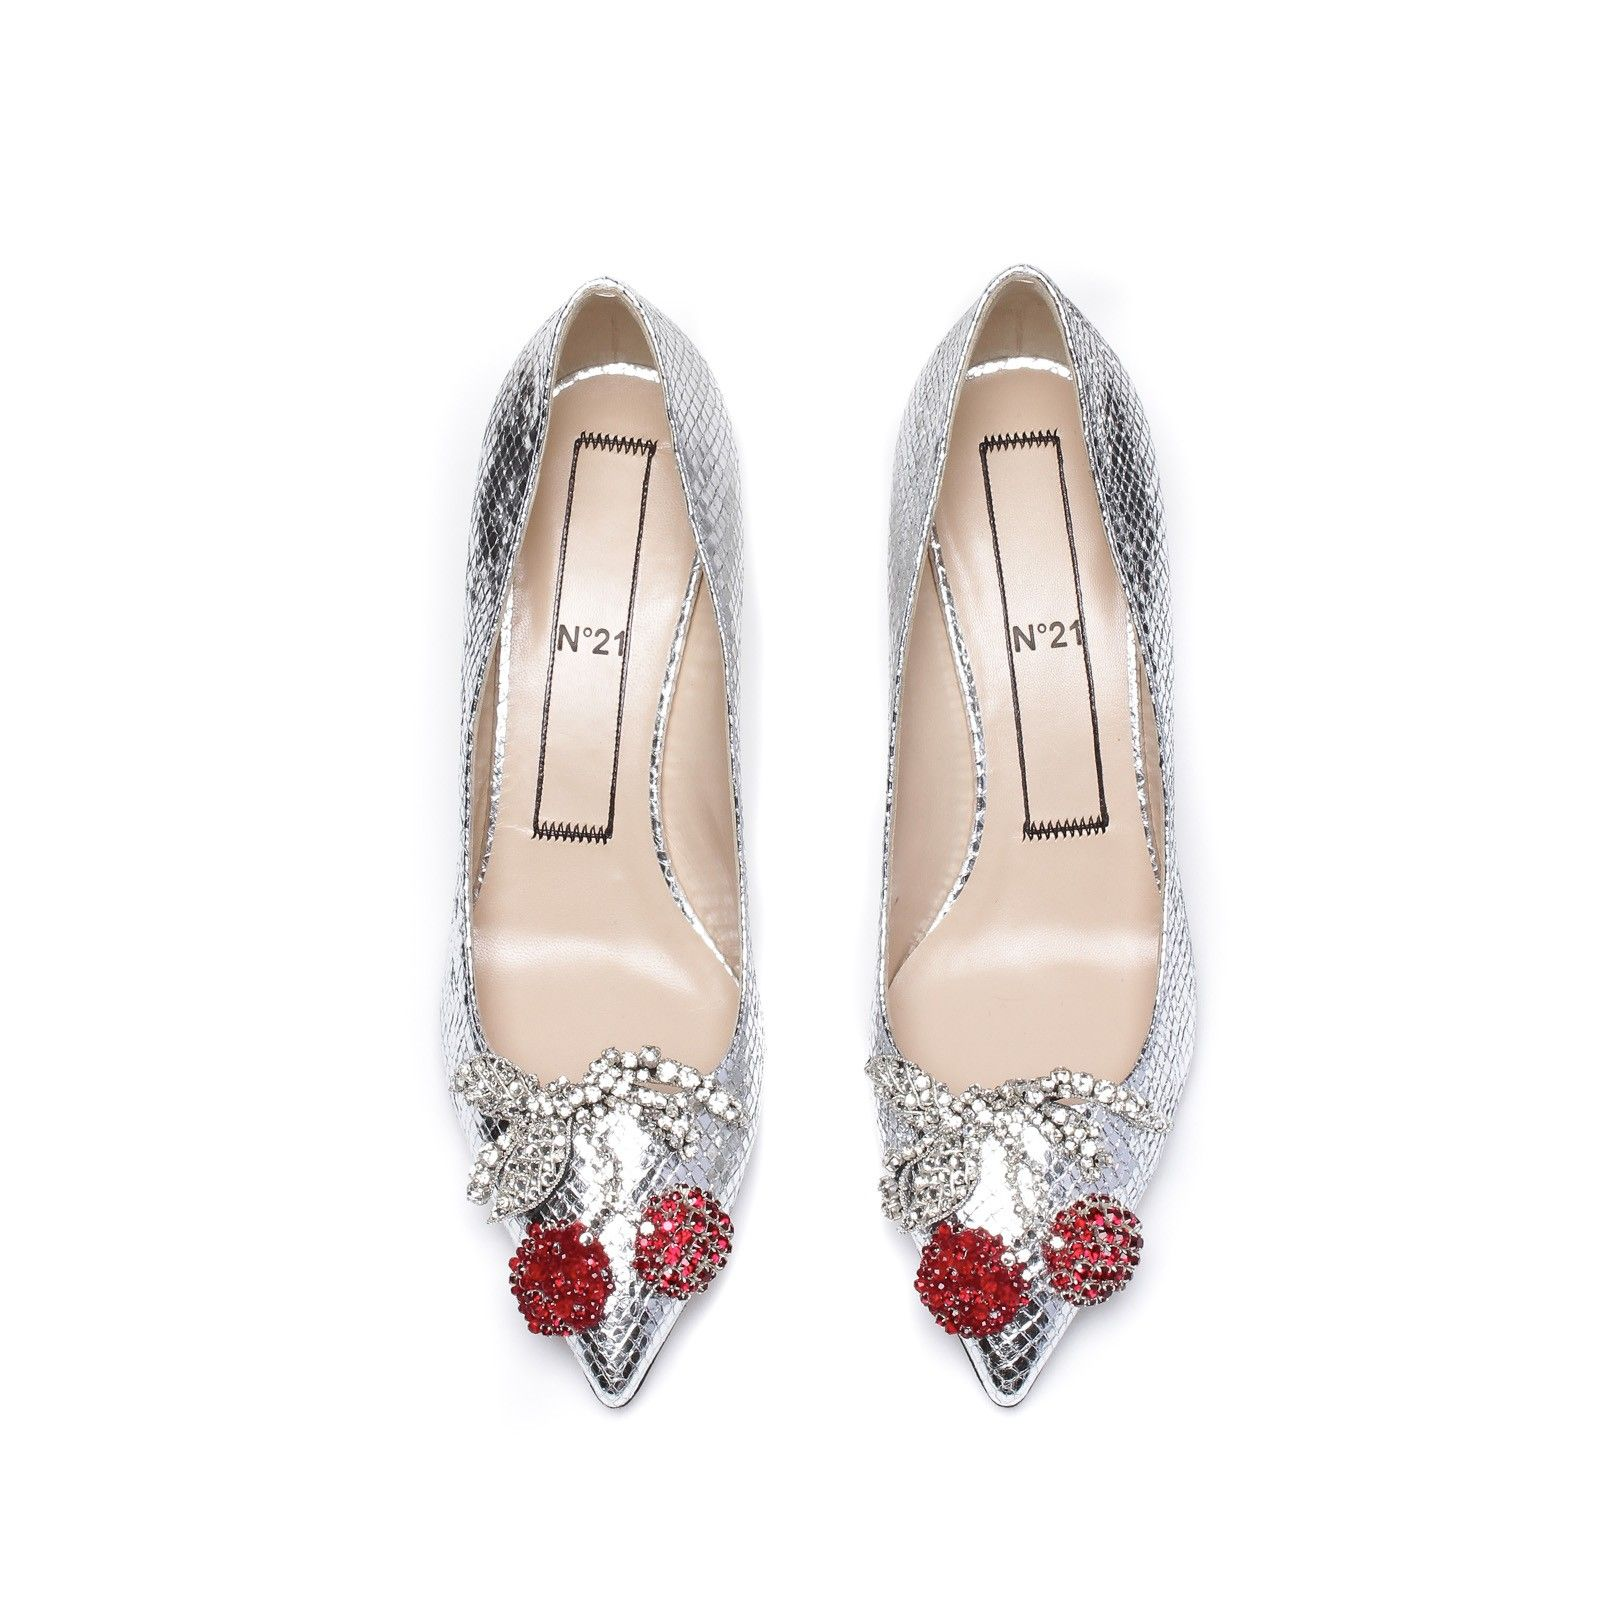 3afa6335d8c Silver heel pumps with cherries embroidery. Very rare Dolce   Gabbana  Runway Cage Heel Shoes Piece of Art!